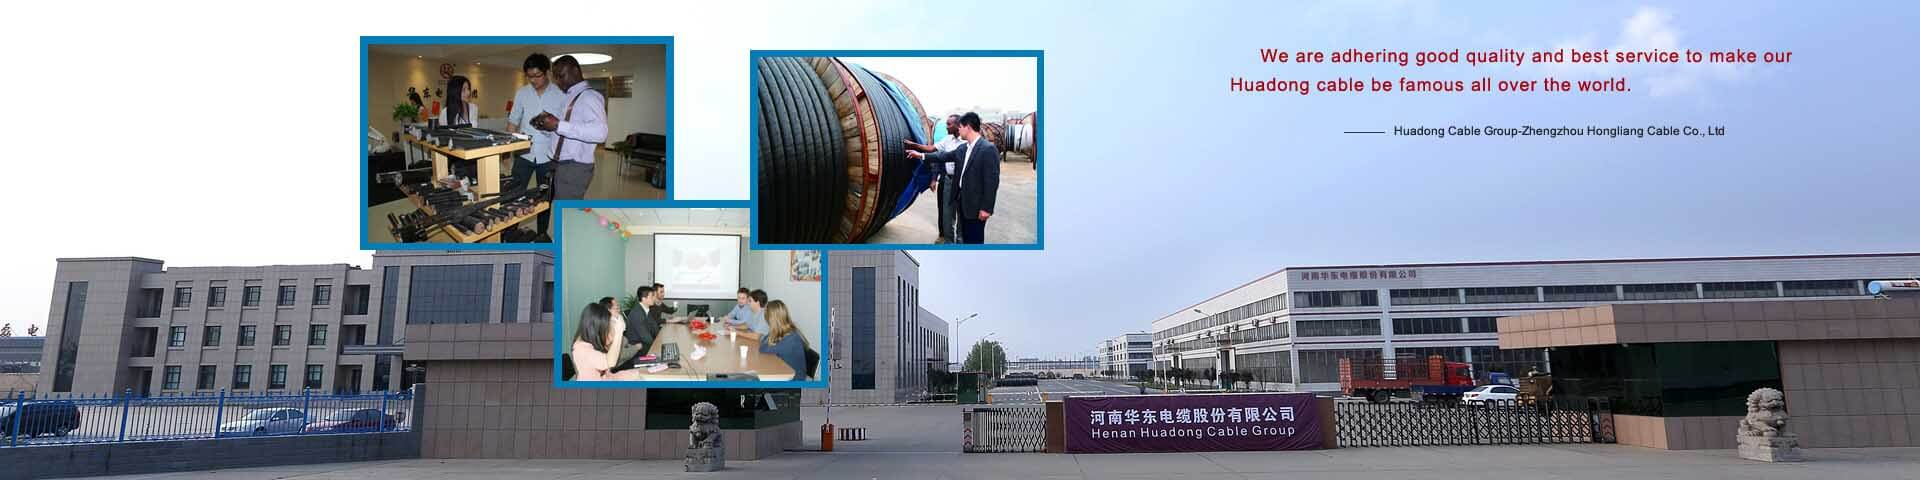 low price electrical wire manufacturers and - huadong